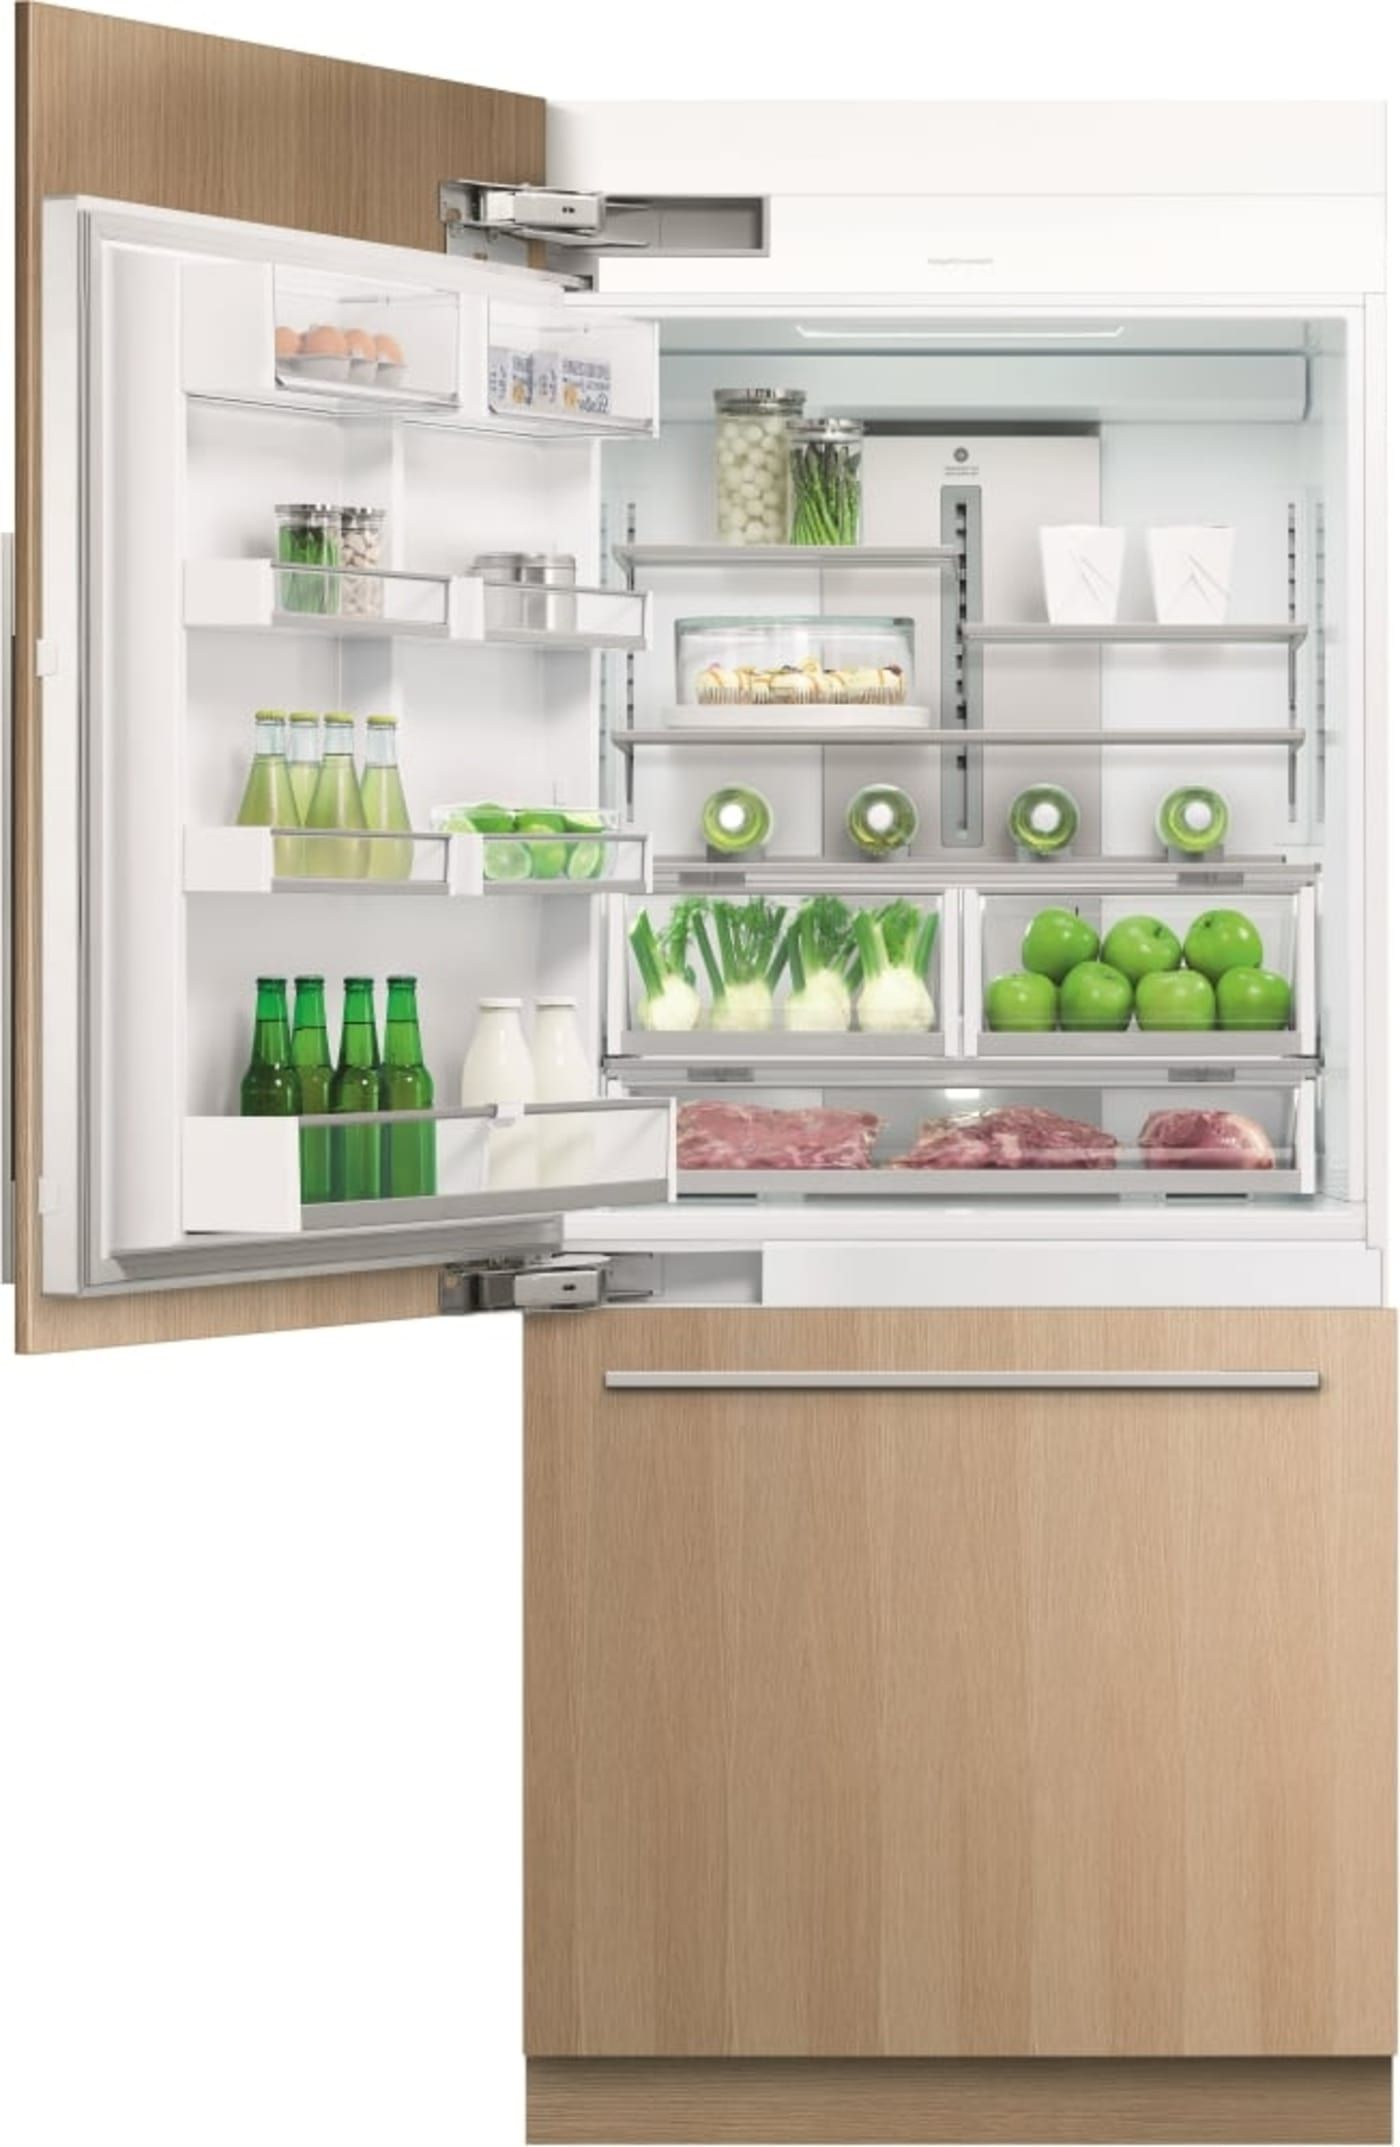 RS36W80LJ1N by Fisher Paykel Bottom Freezer